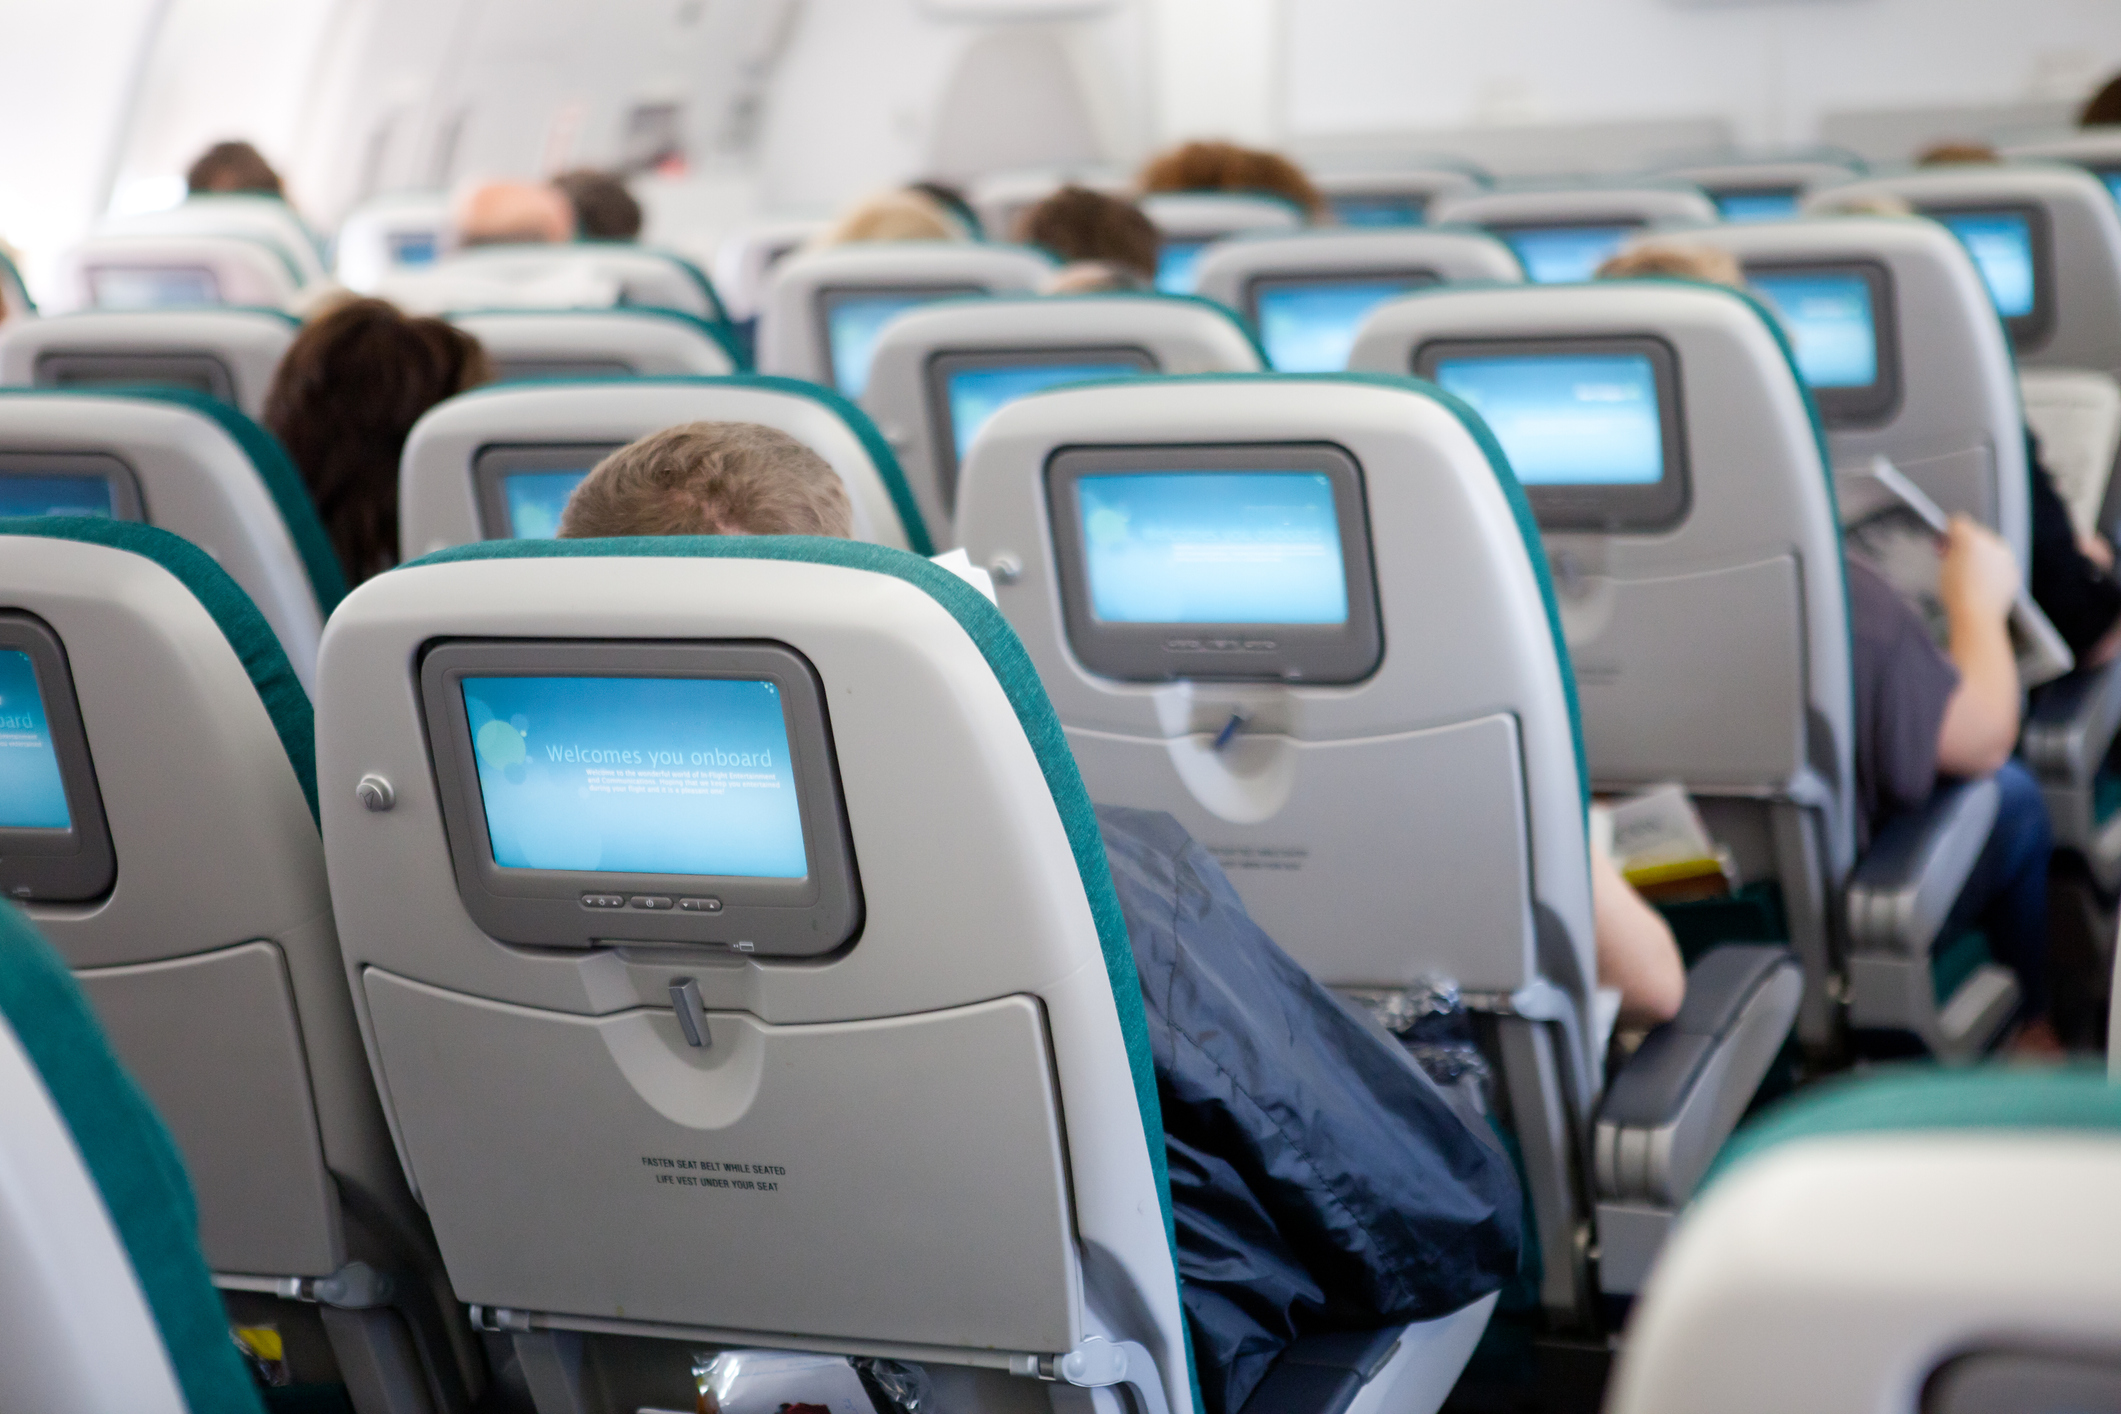 New York, USA - August 7, 2011: Modern airplane seat with individual monitors displaying flight information from the onboard computer.